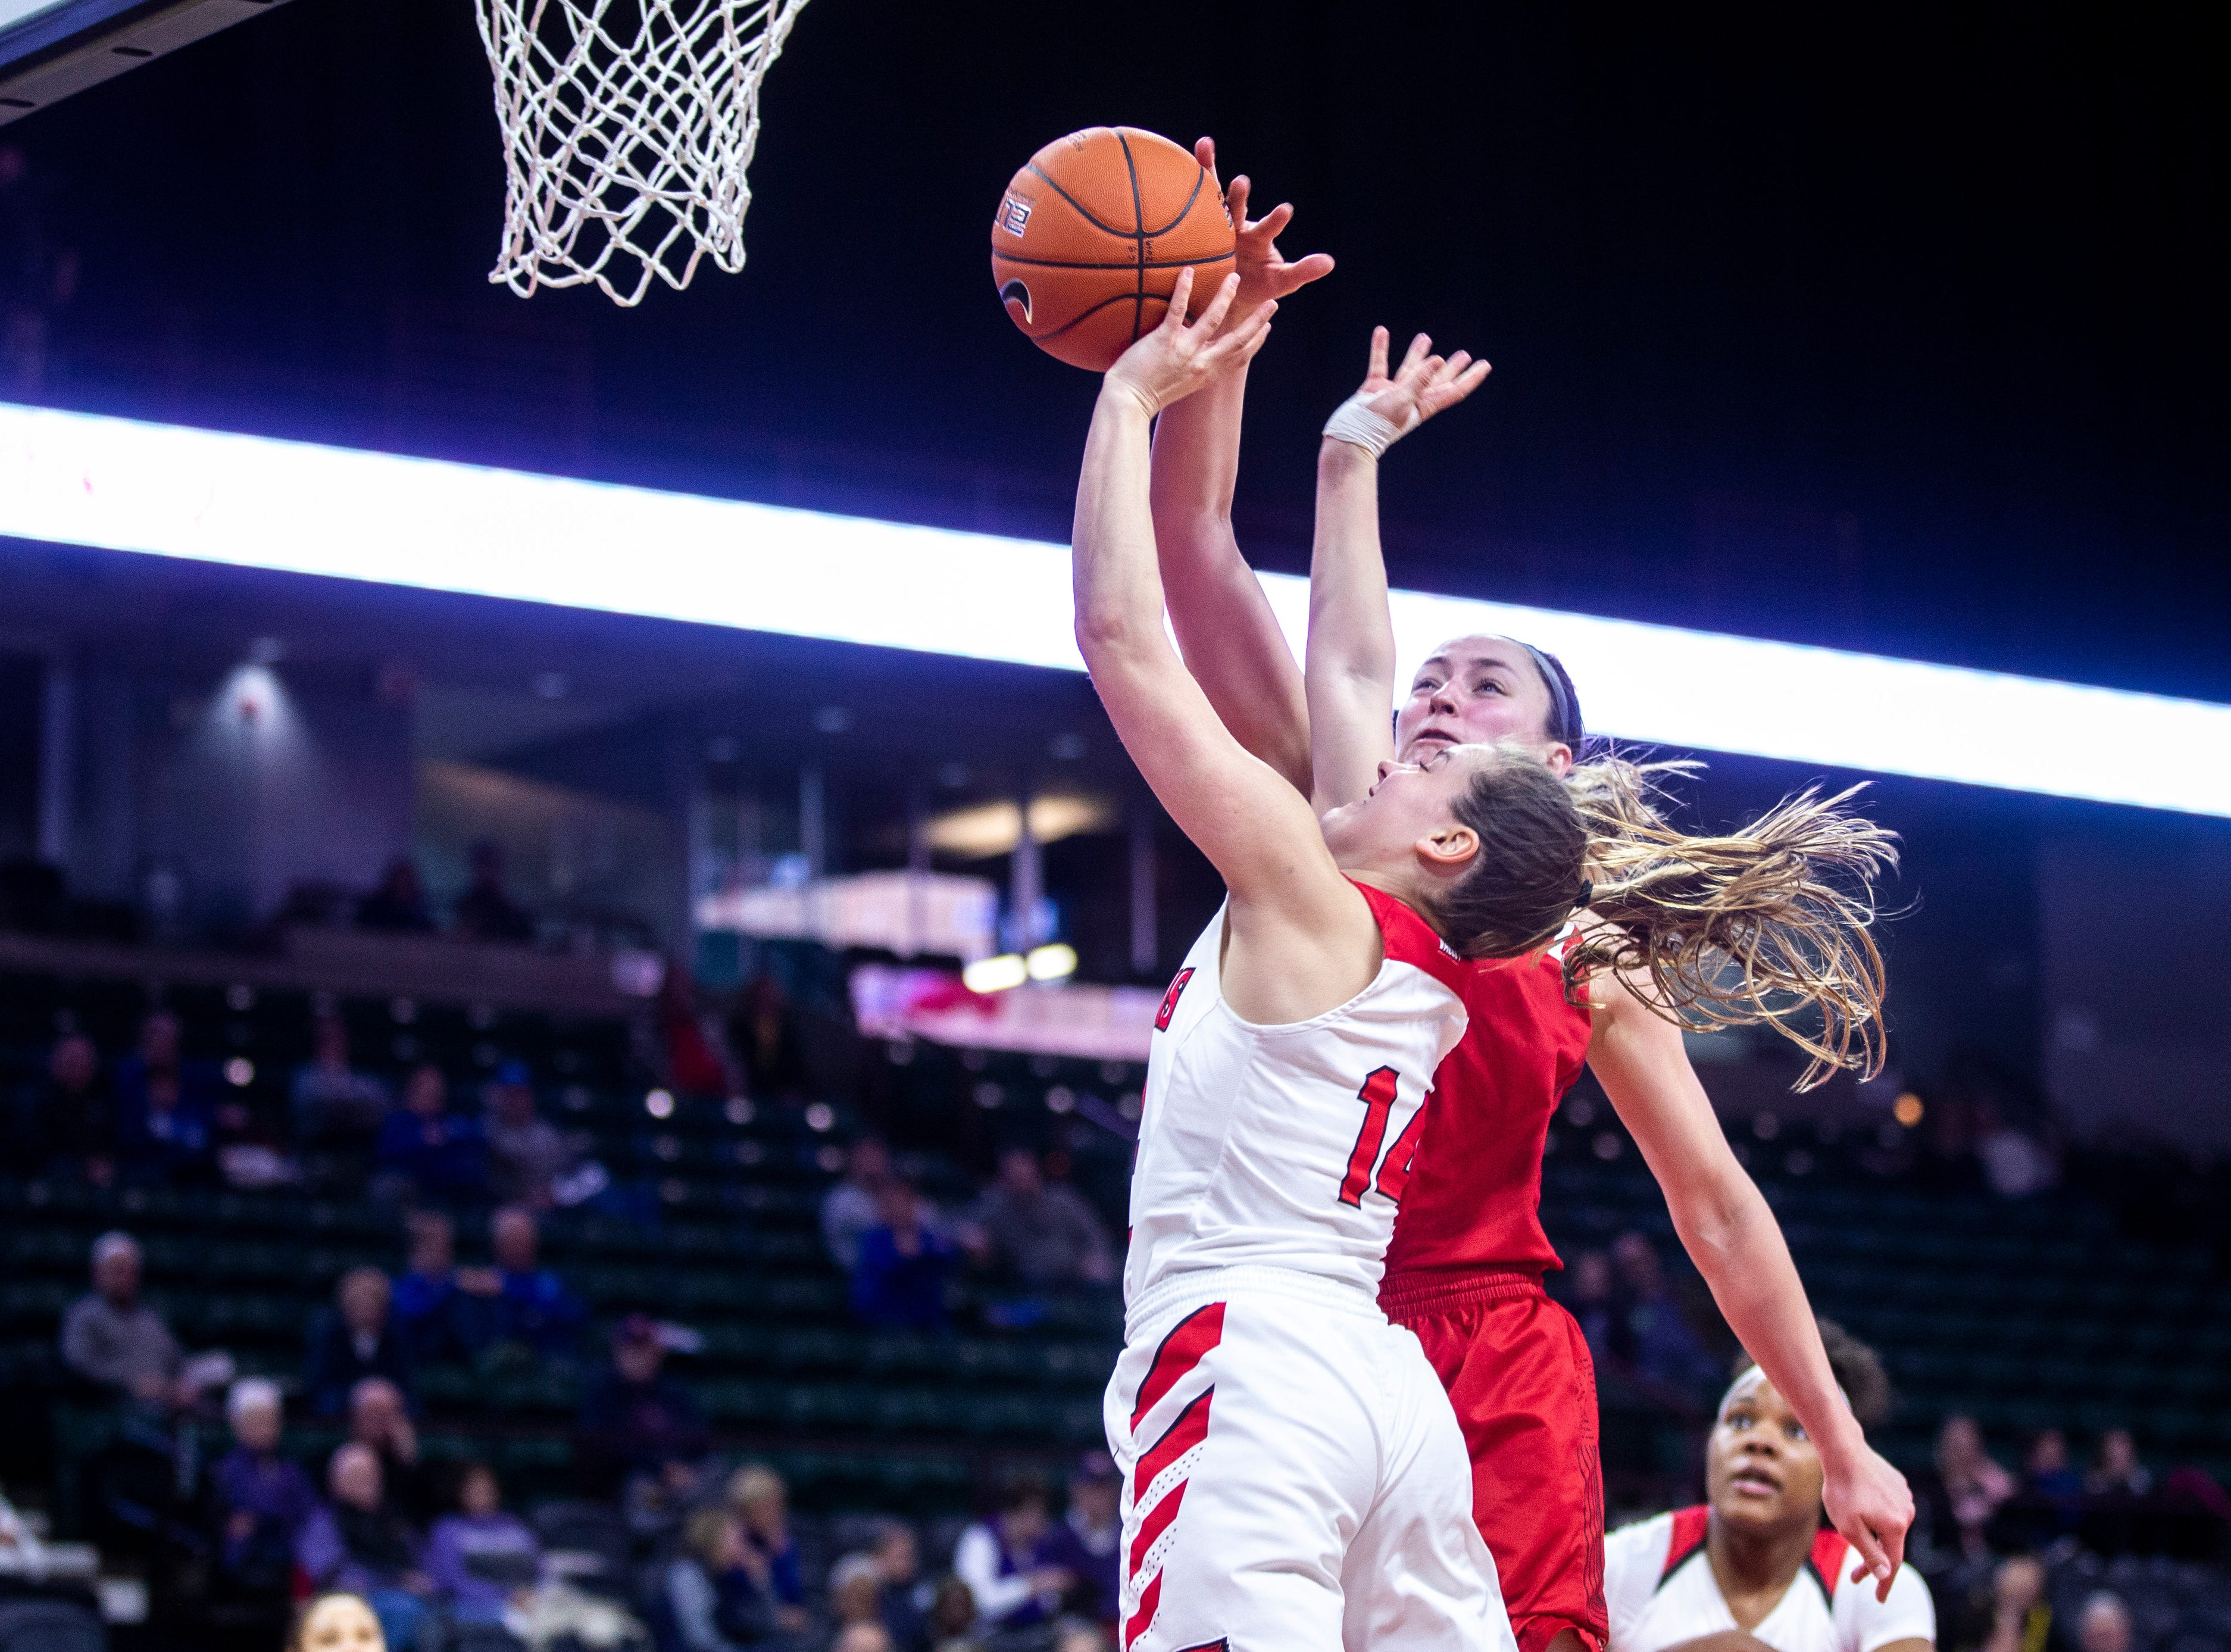 Illinois State guard Paige Saylor (14) gets her shot blocked by Bradley forward Chelsea Brackmann during a NCAA Missouri Valley Conference women's basketball quarterfinal tournament game, Friday, March 15, 2019, at the TaxSlayer Center in Moline, Illinois.